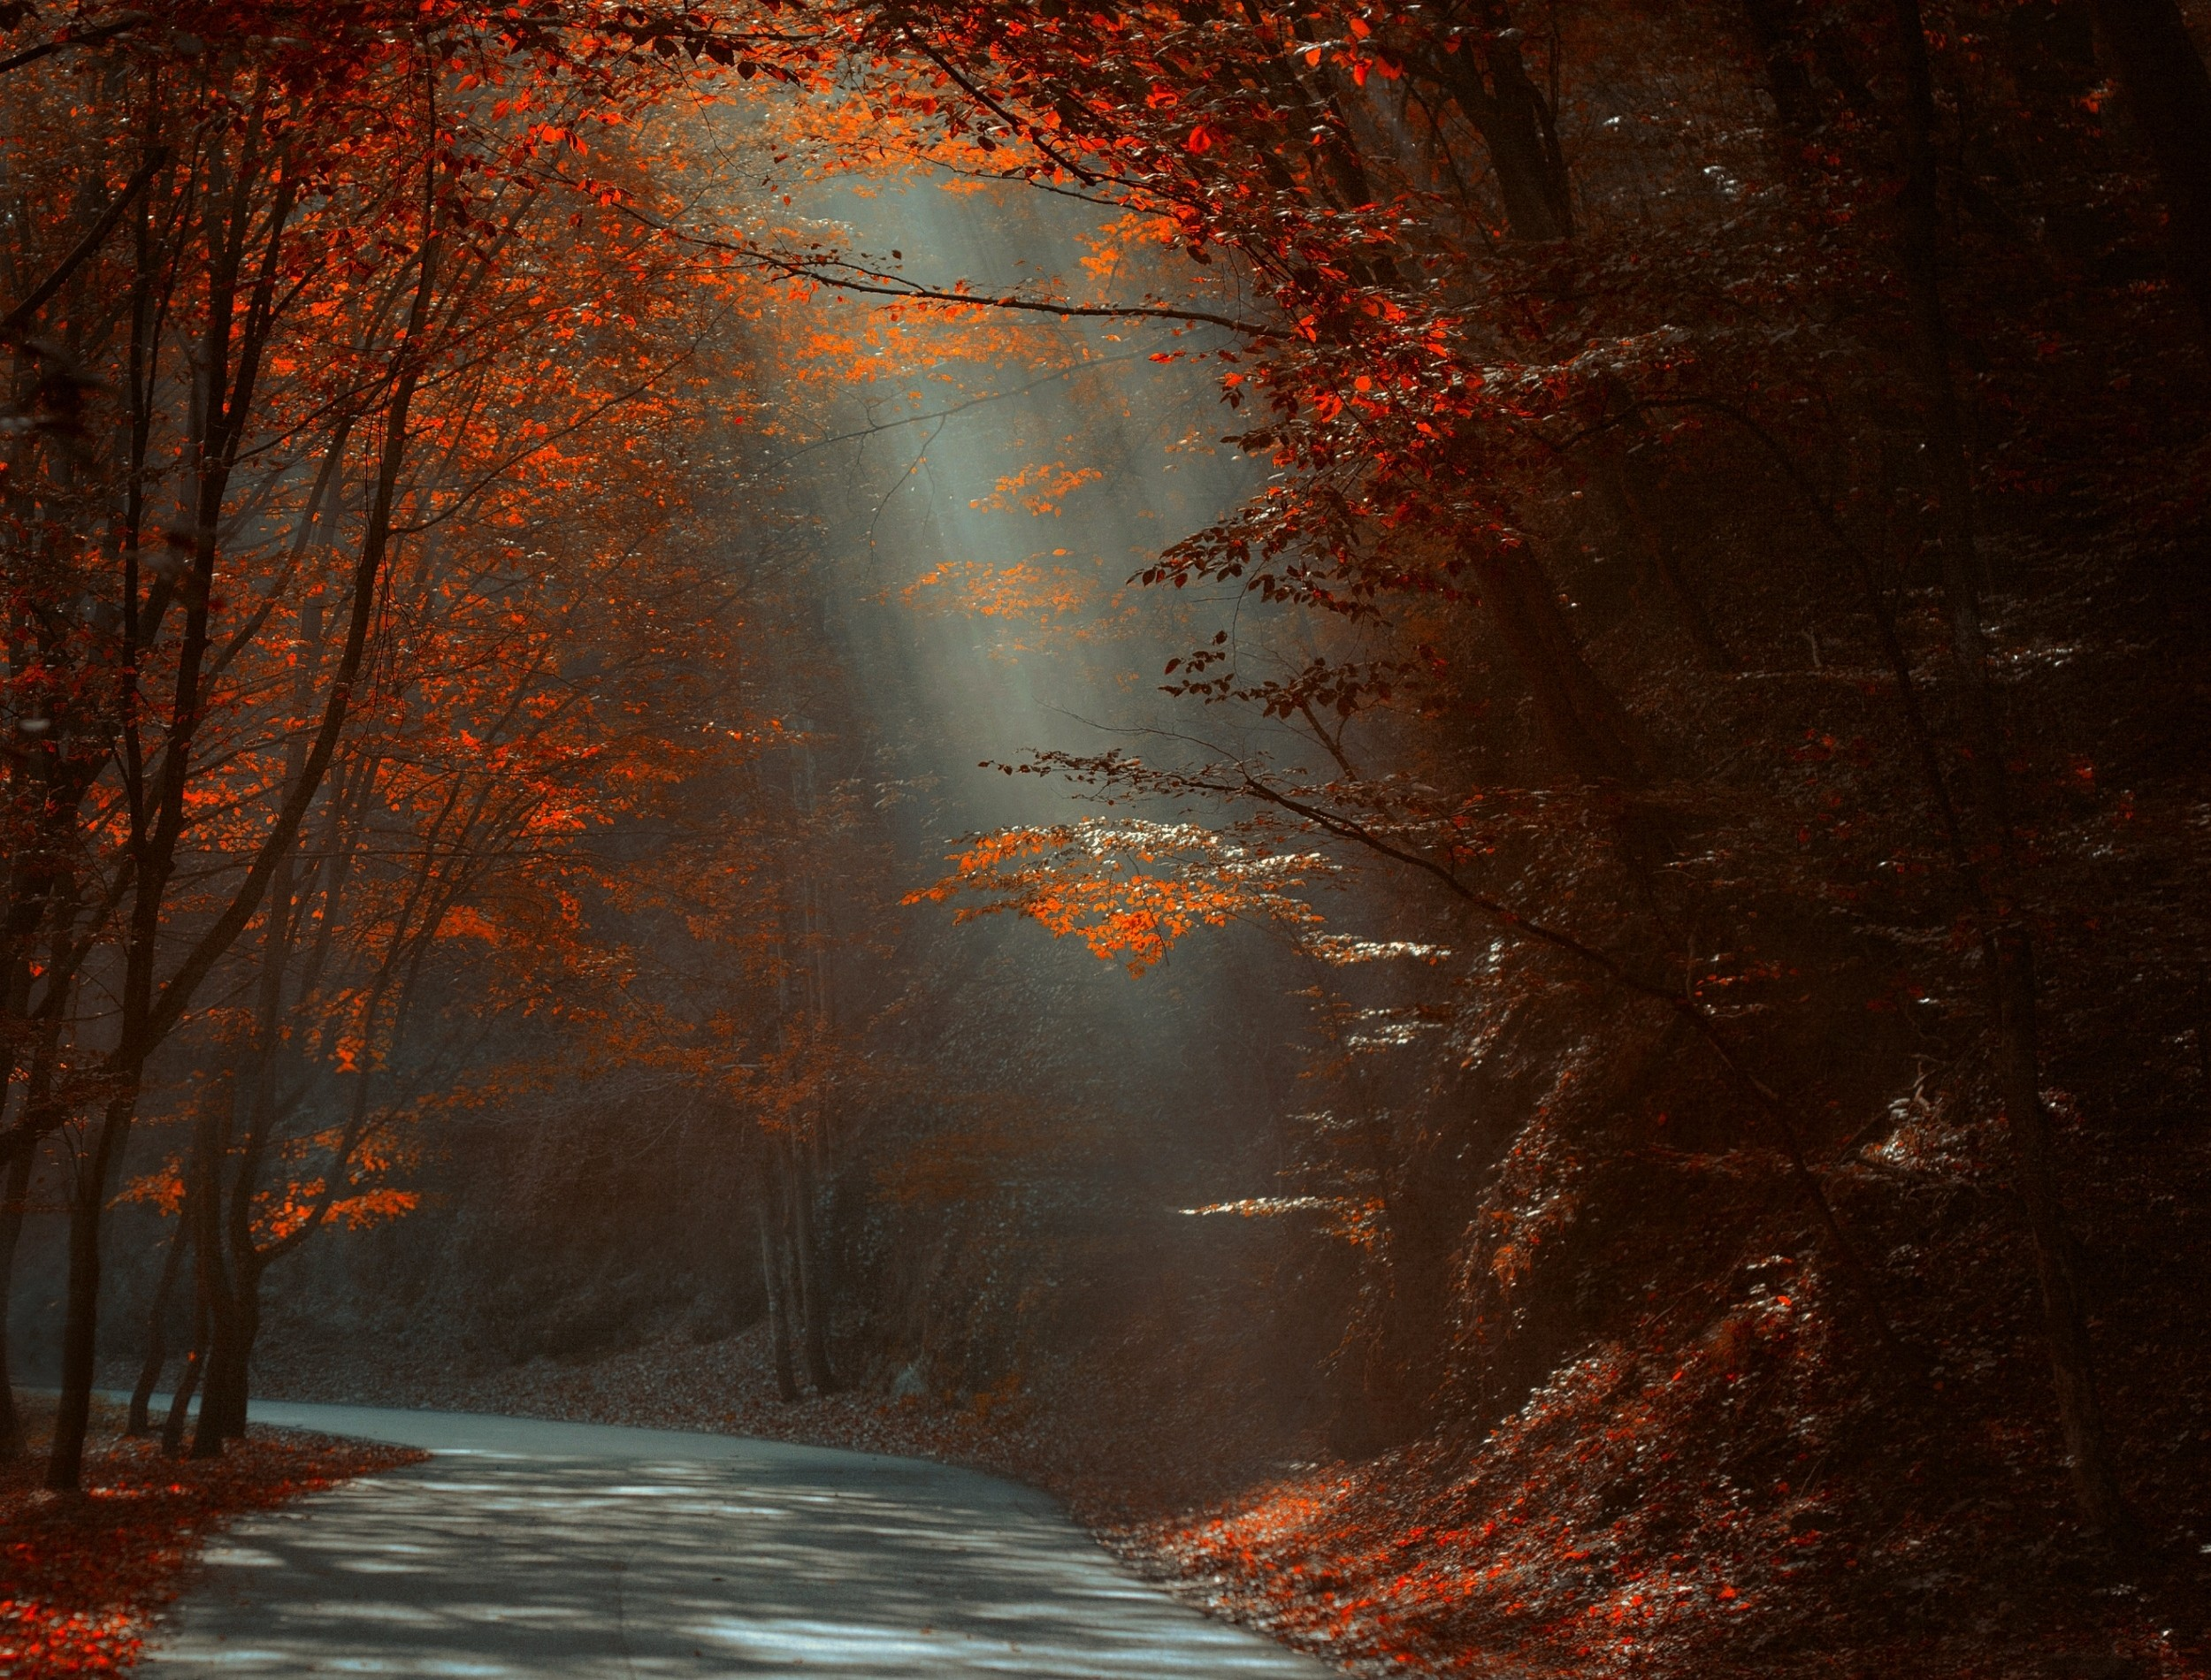 General 2500x1900 nature landscape road forest red leaves fall sun rays sunlight trees morning